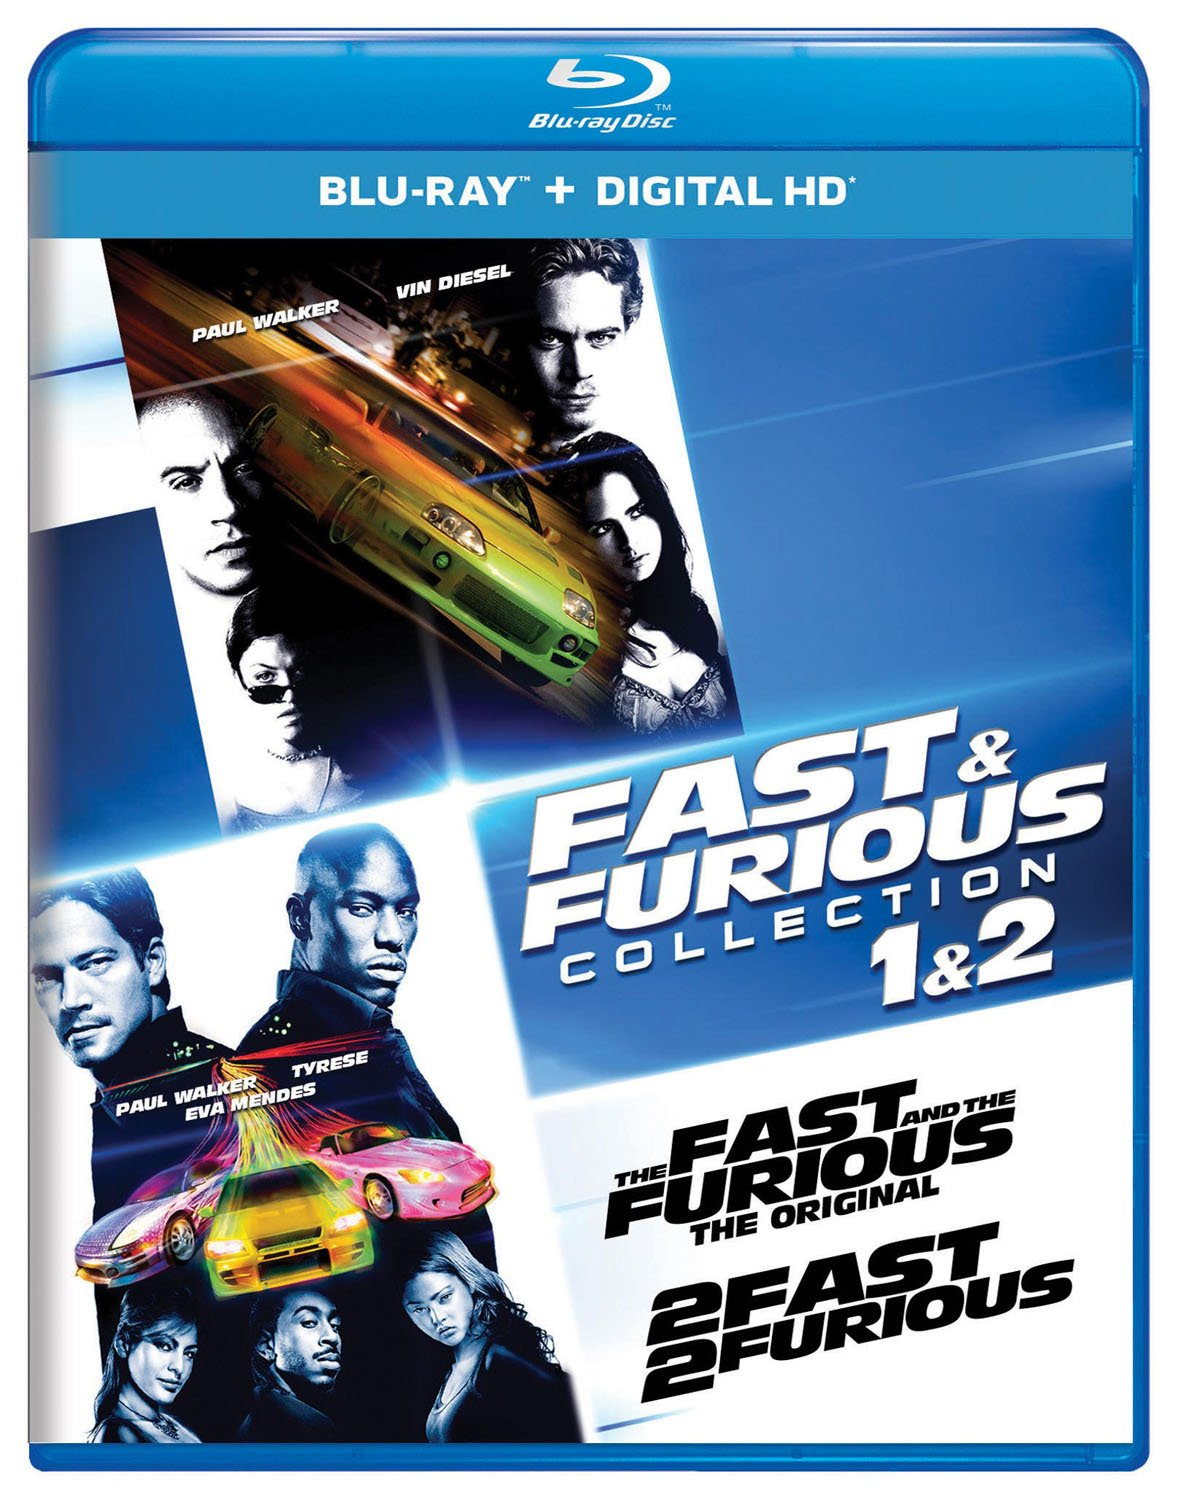 The Fast & The Furious [Movie] - Fast & Furious Collection: 1 & 2